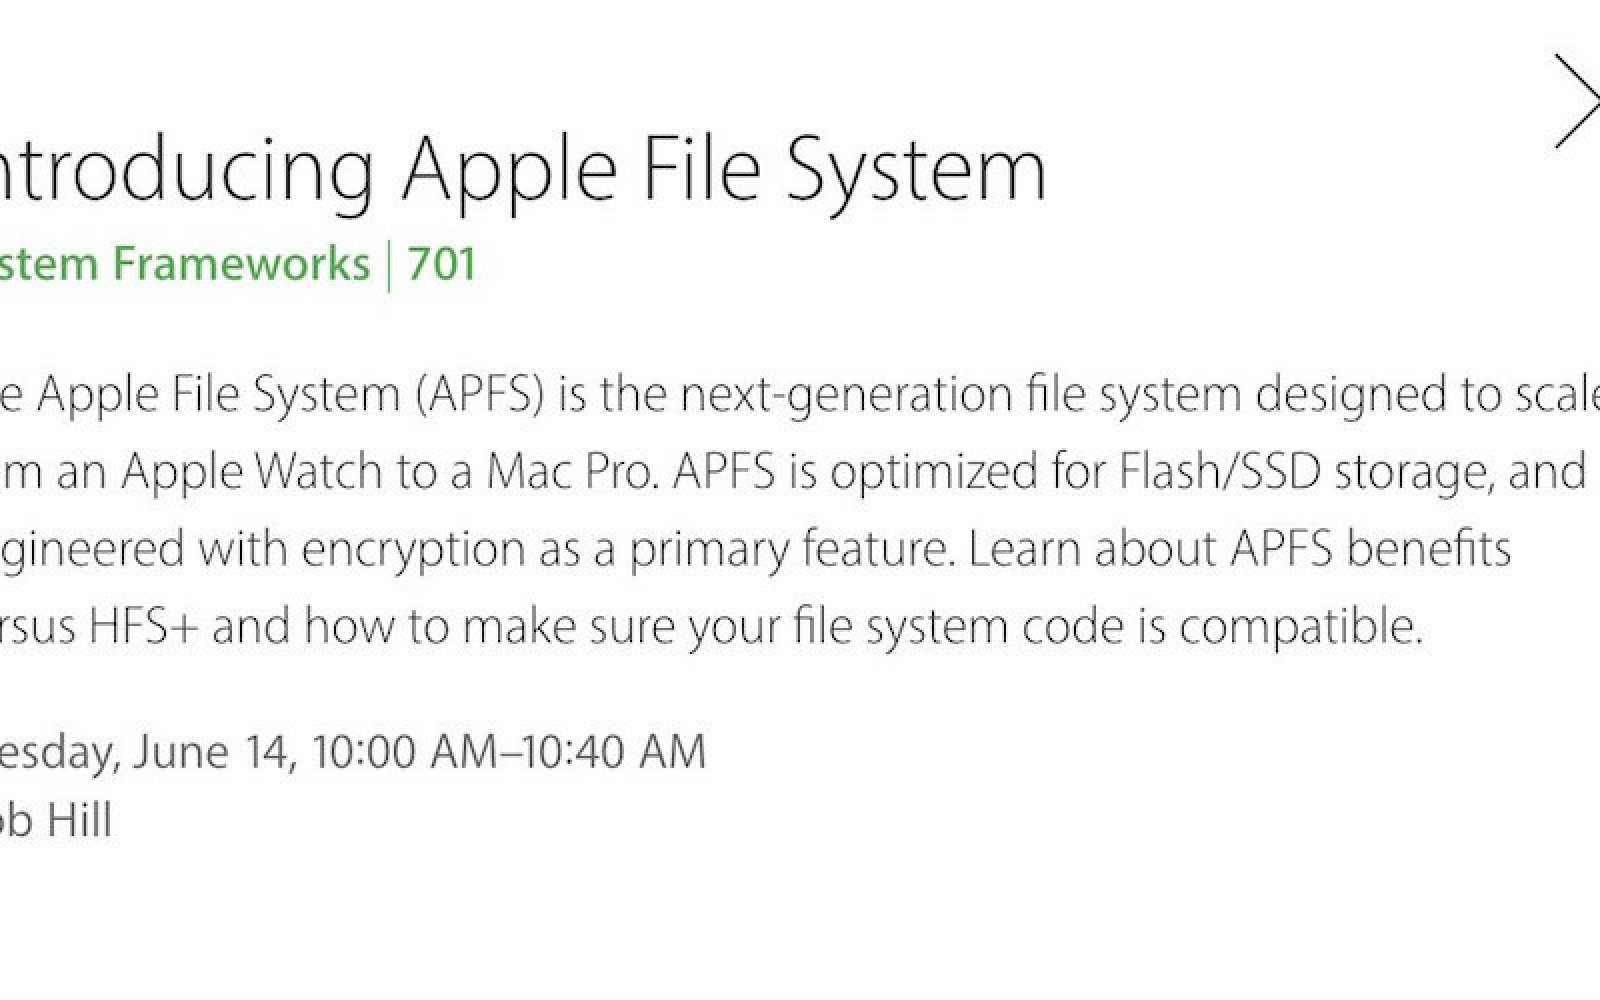 Apple File System (APFS) announced for 2017, scales 'from Apple Watch to Mac Pro' and focuses on encryption